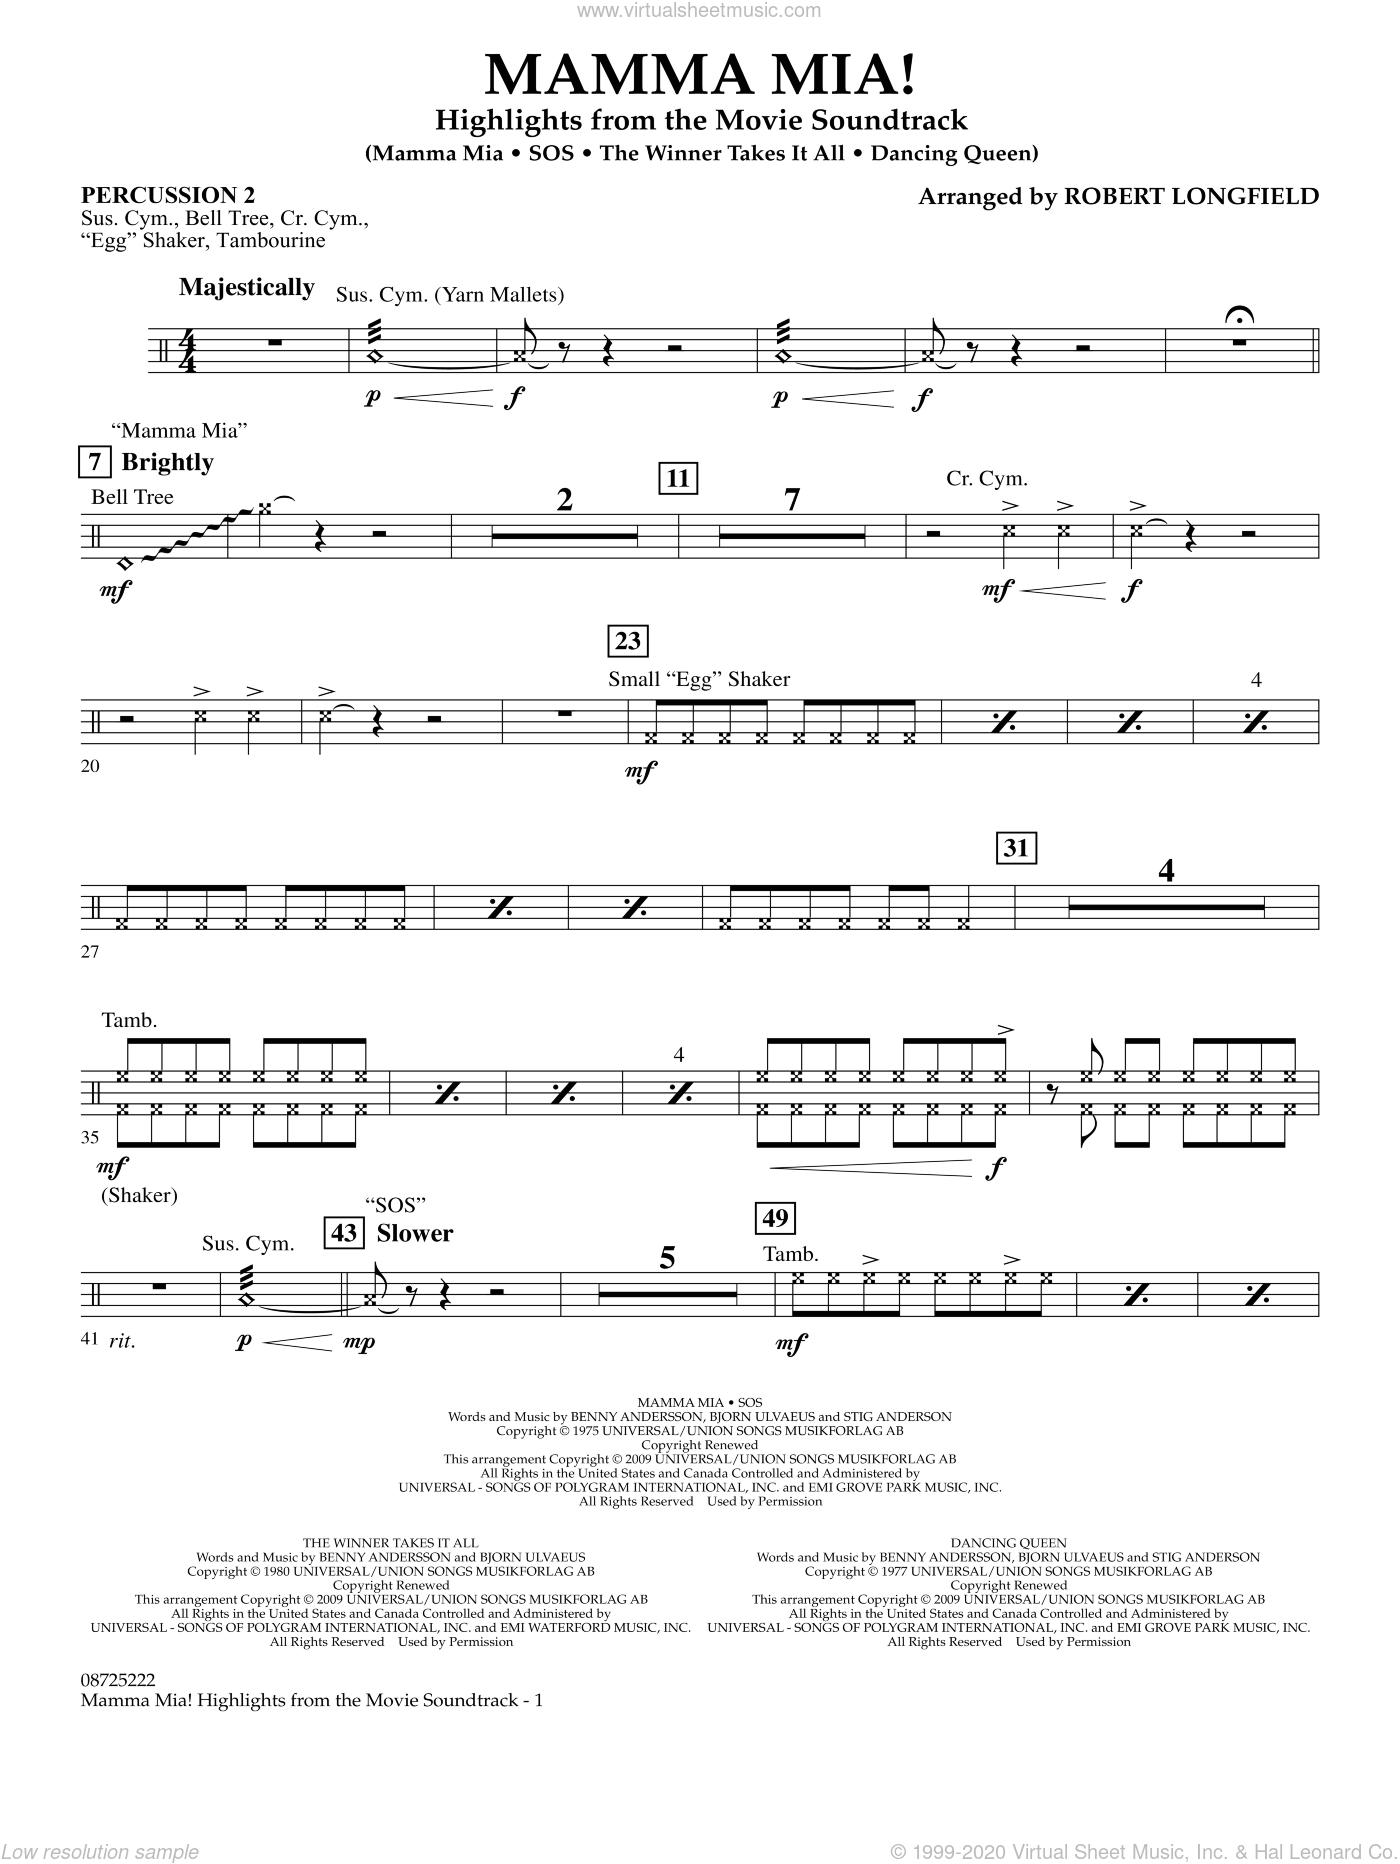 Mamma Mia!, highlights from the movie soundtrack sheet music for concert band (percussion 2) by Robert Longfield